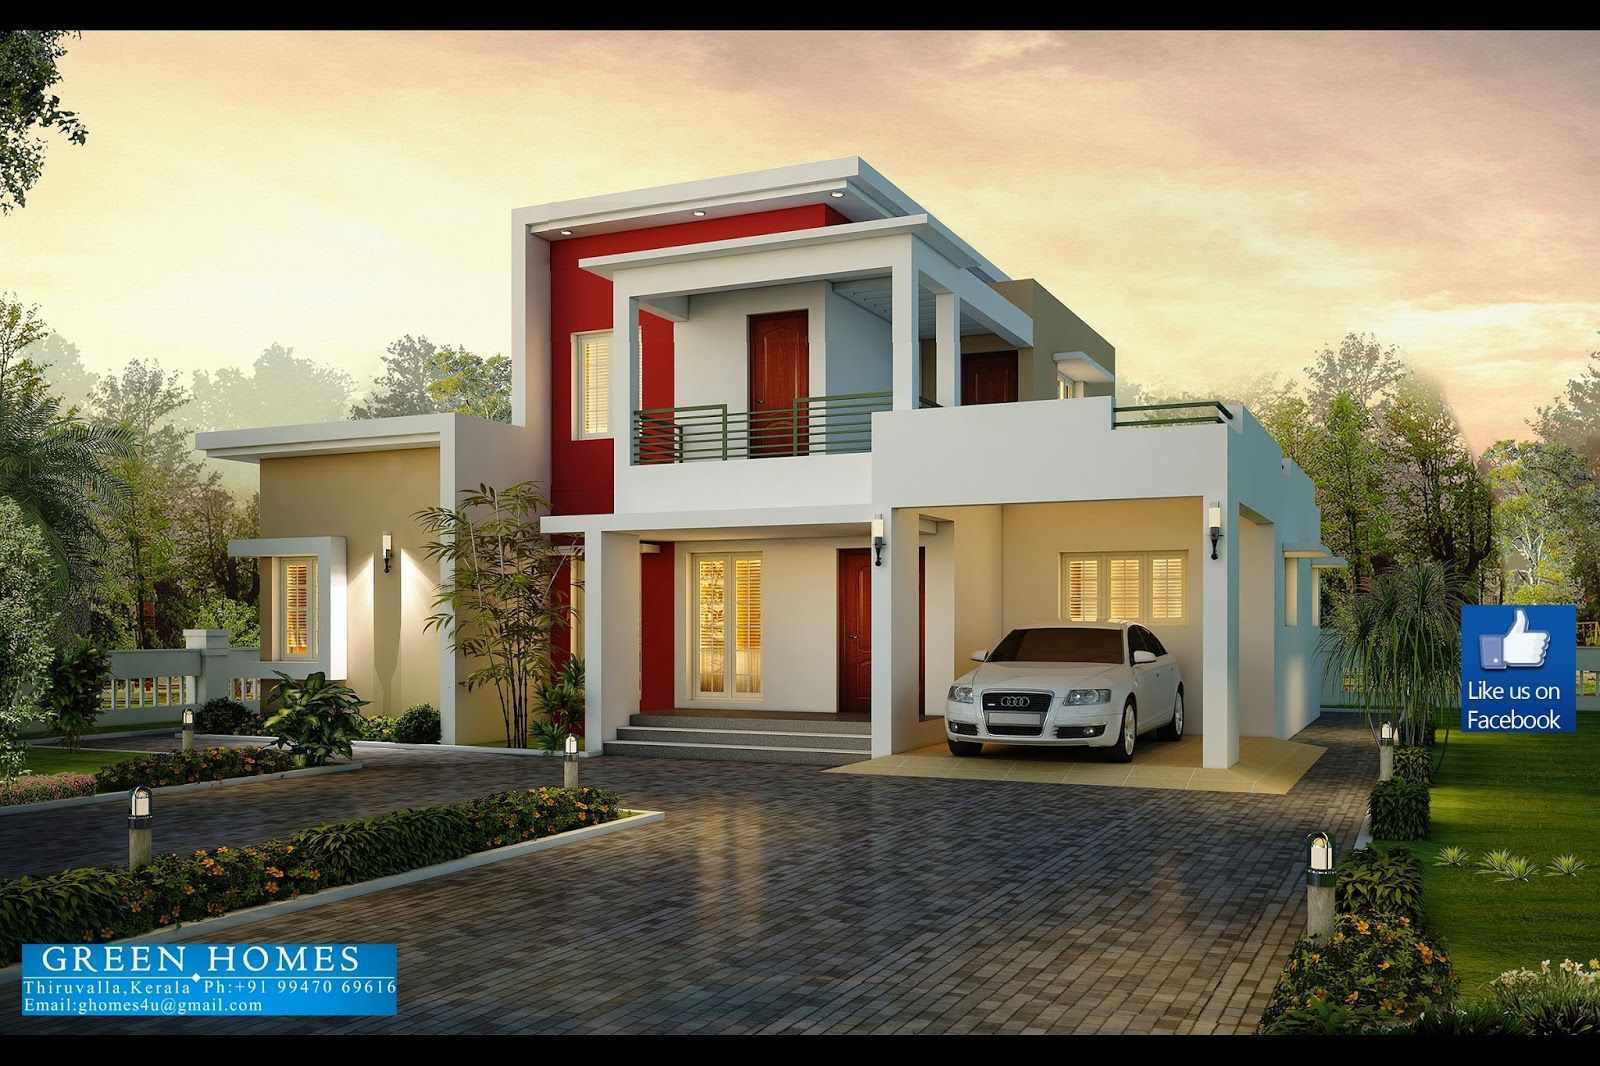 3 bedroom modern house design ideas 2017 2018 for 3 bedroom house layout